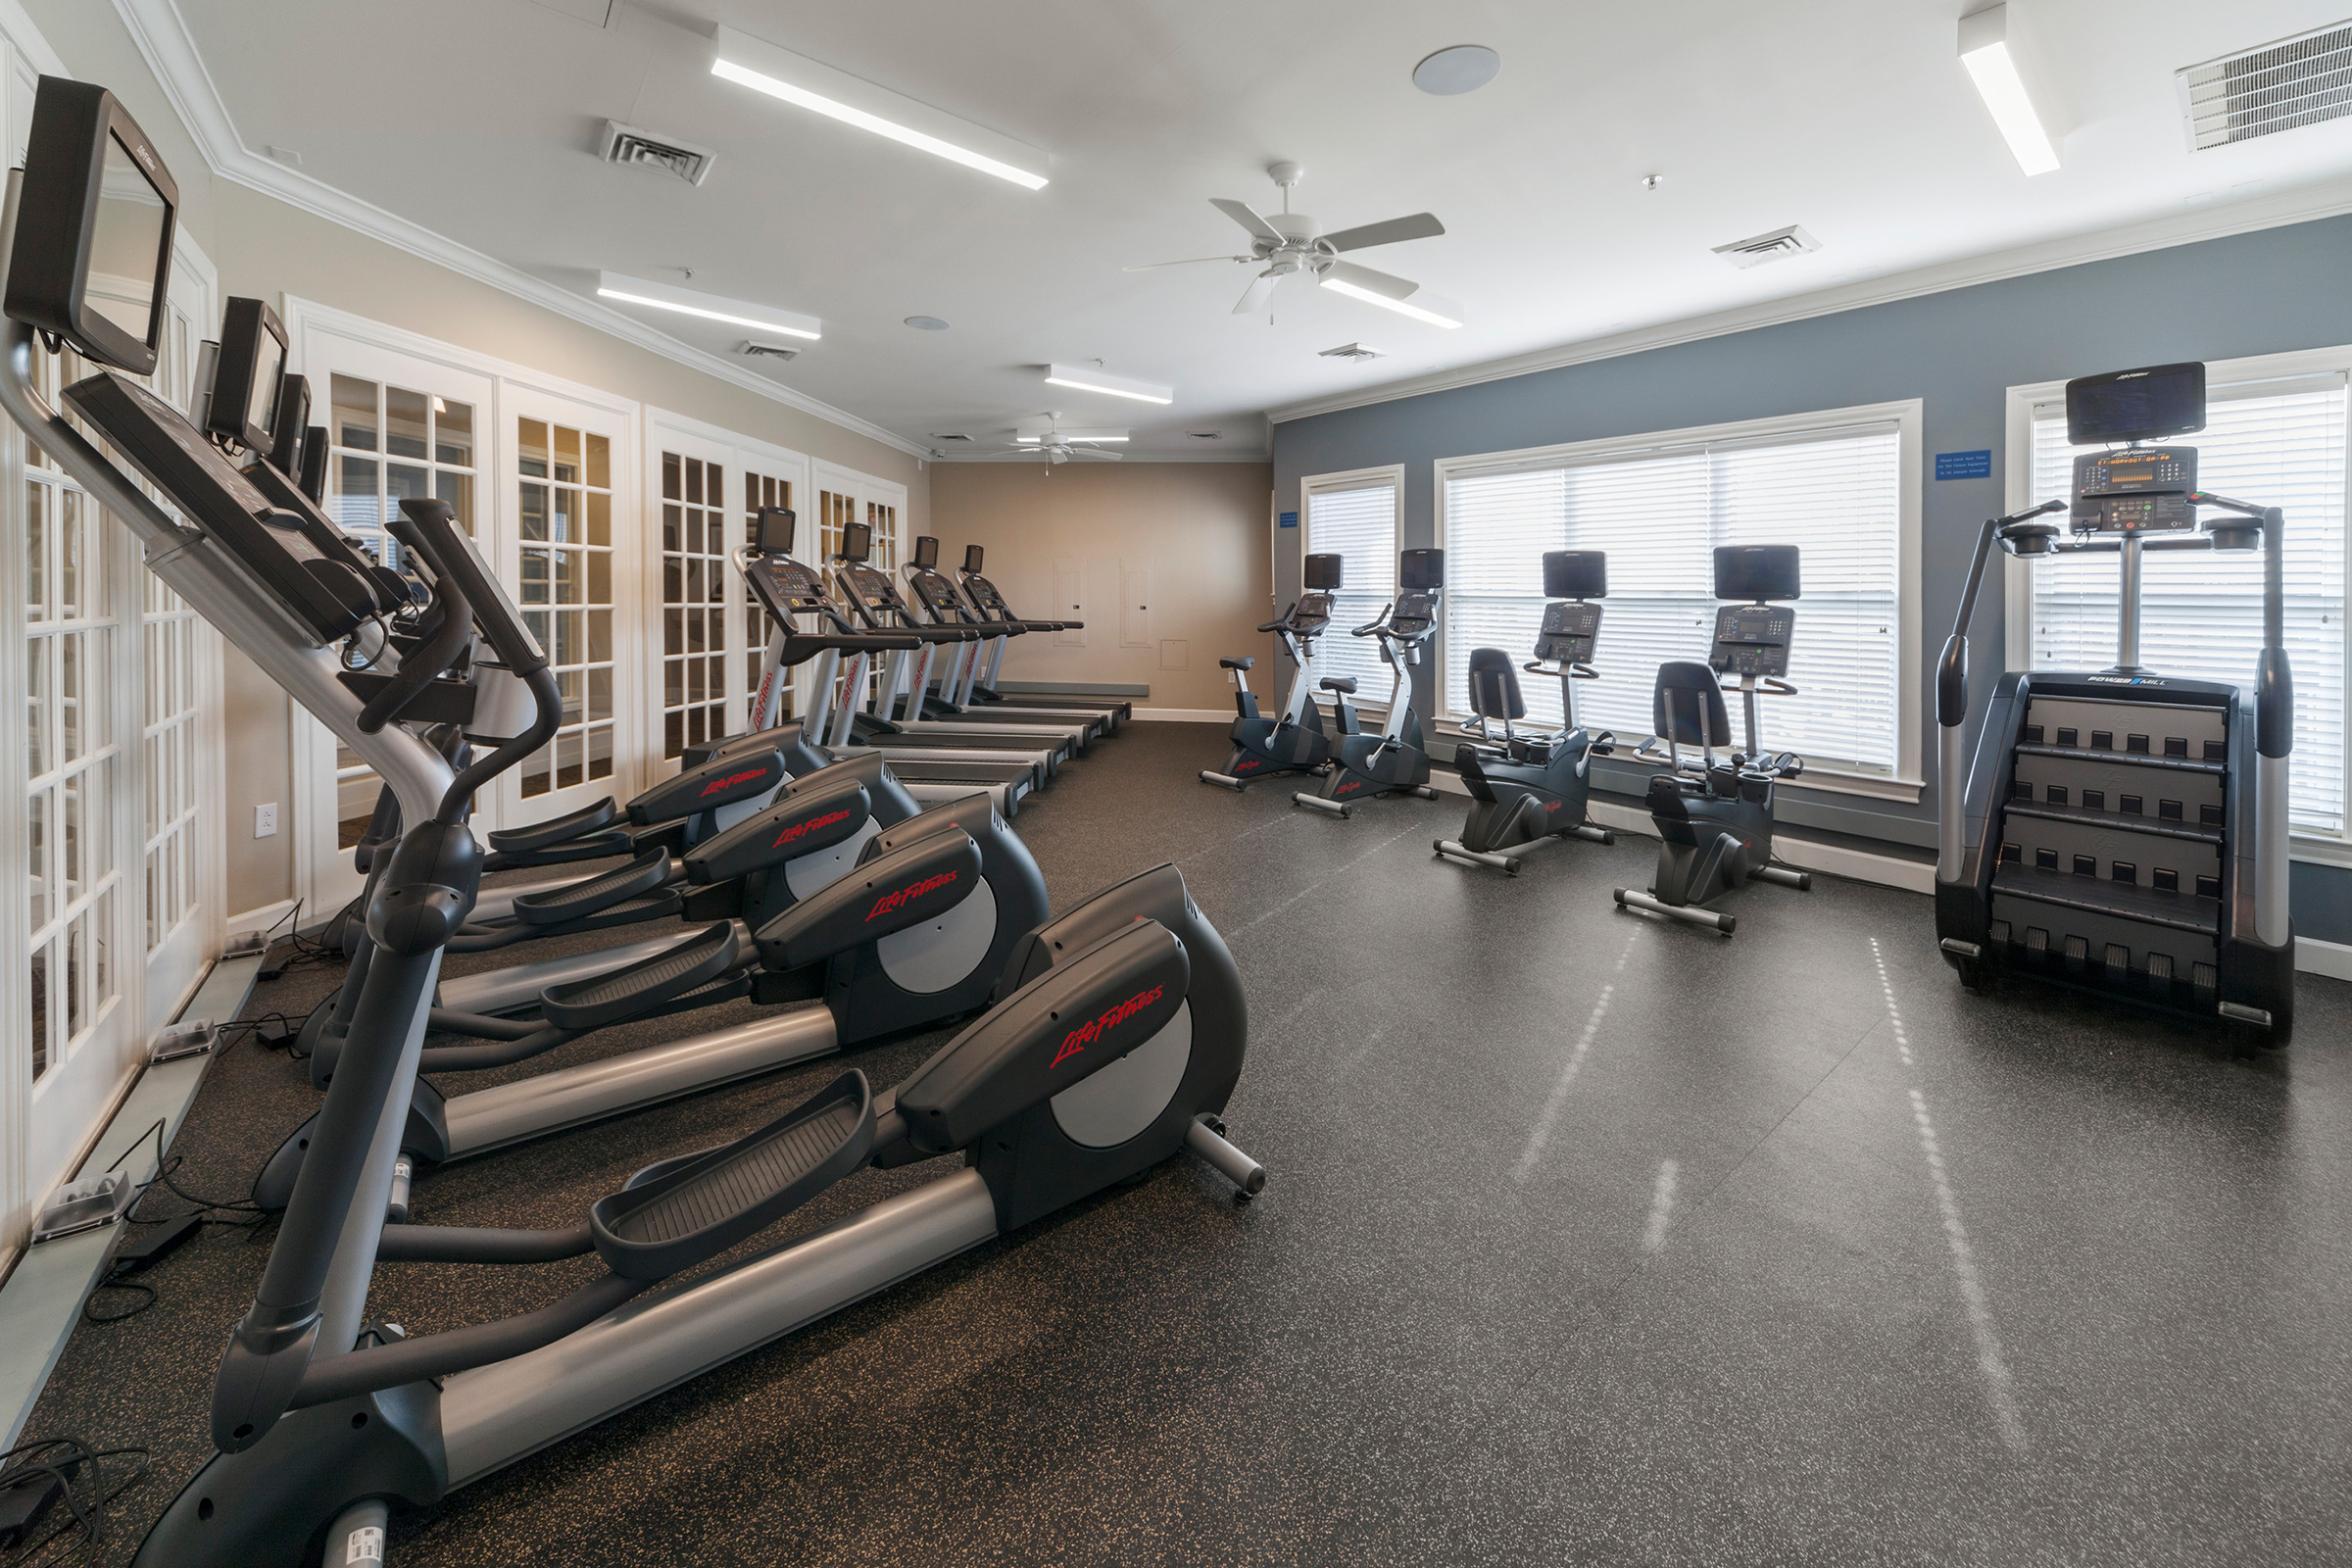 Bright fitness center with treadmills, fitness bikes and stair stepper.